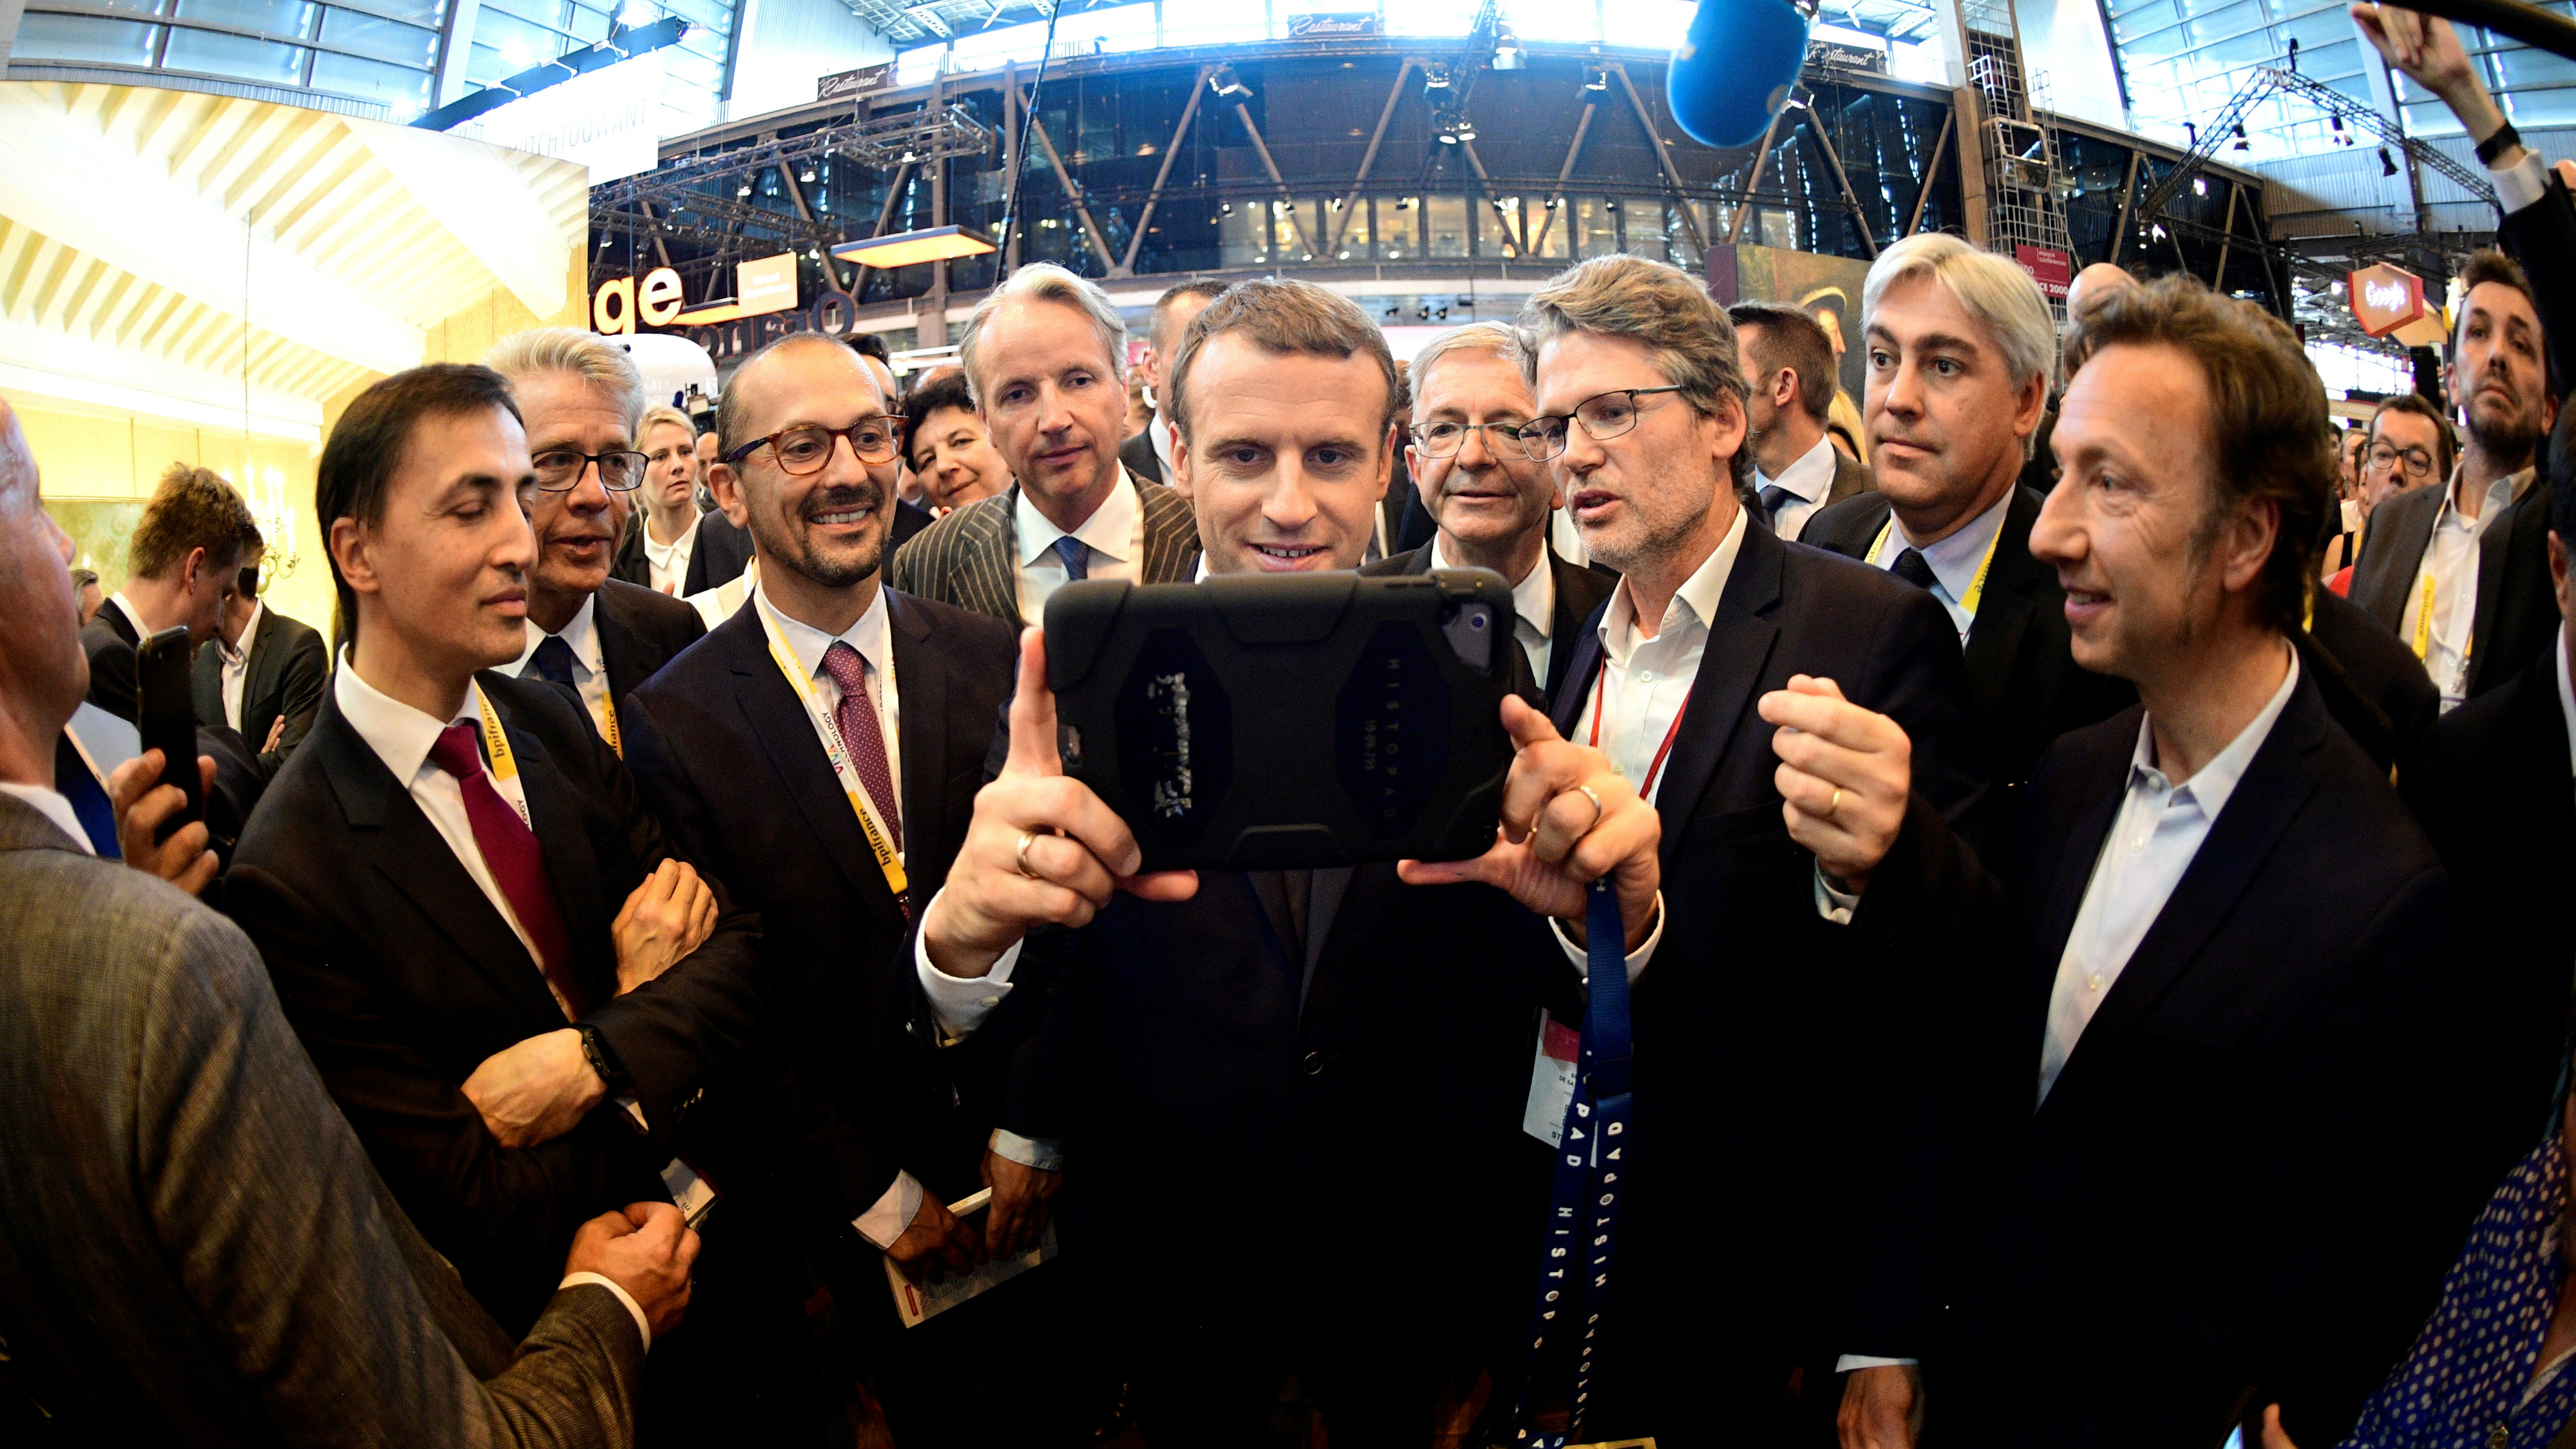 French President Emmanuel Macron (C) holds a device at the Viva Technology event dedicated to start-ups development, innovation and digital technology in Paris, France, June 15, 2017.